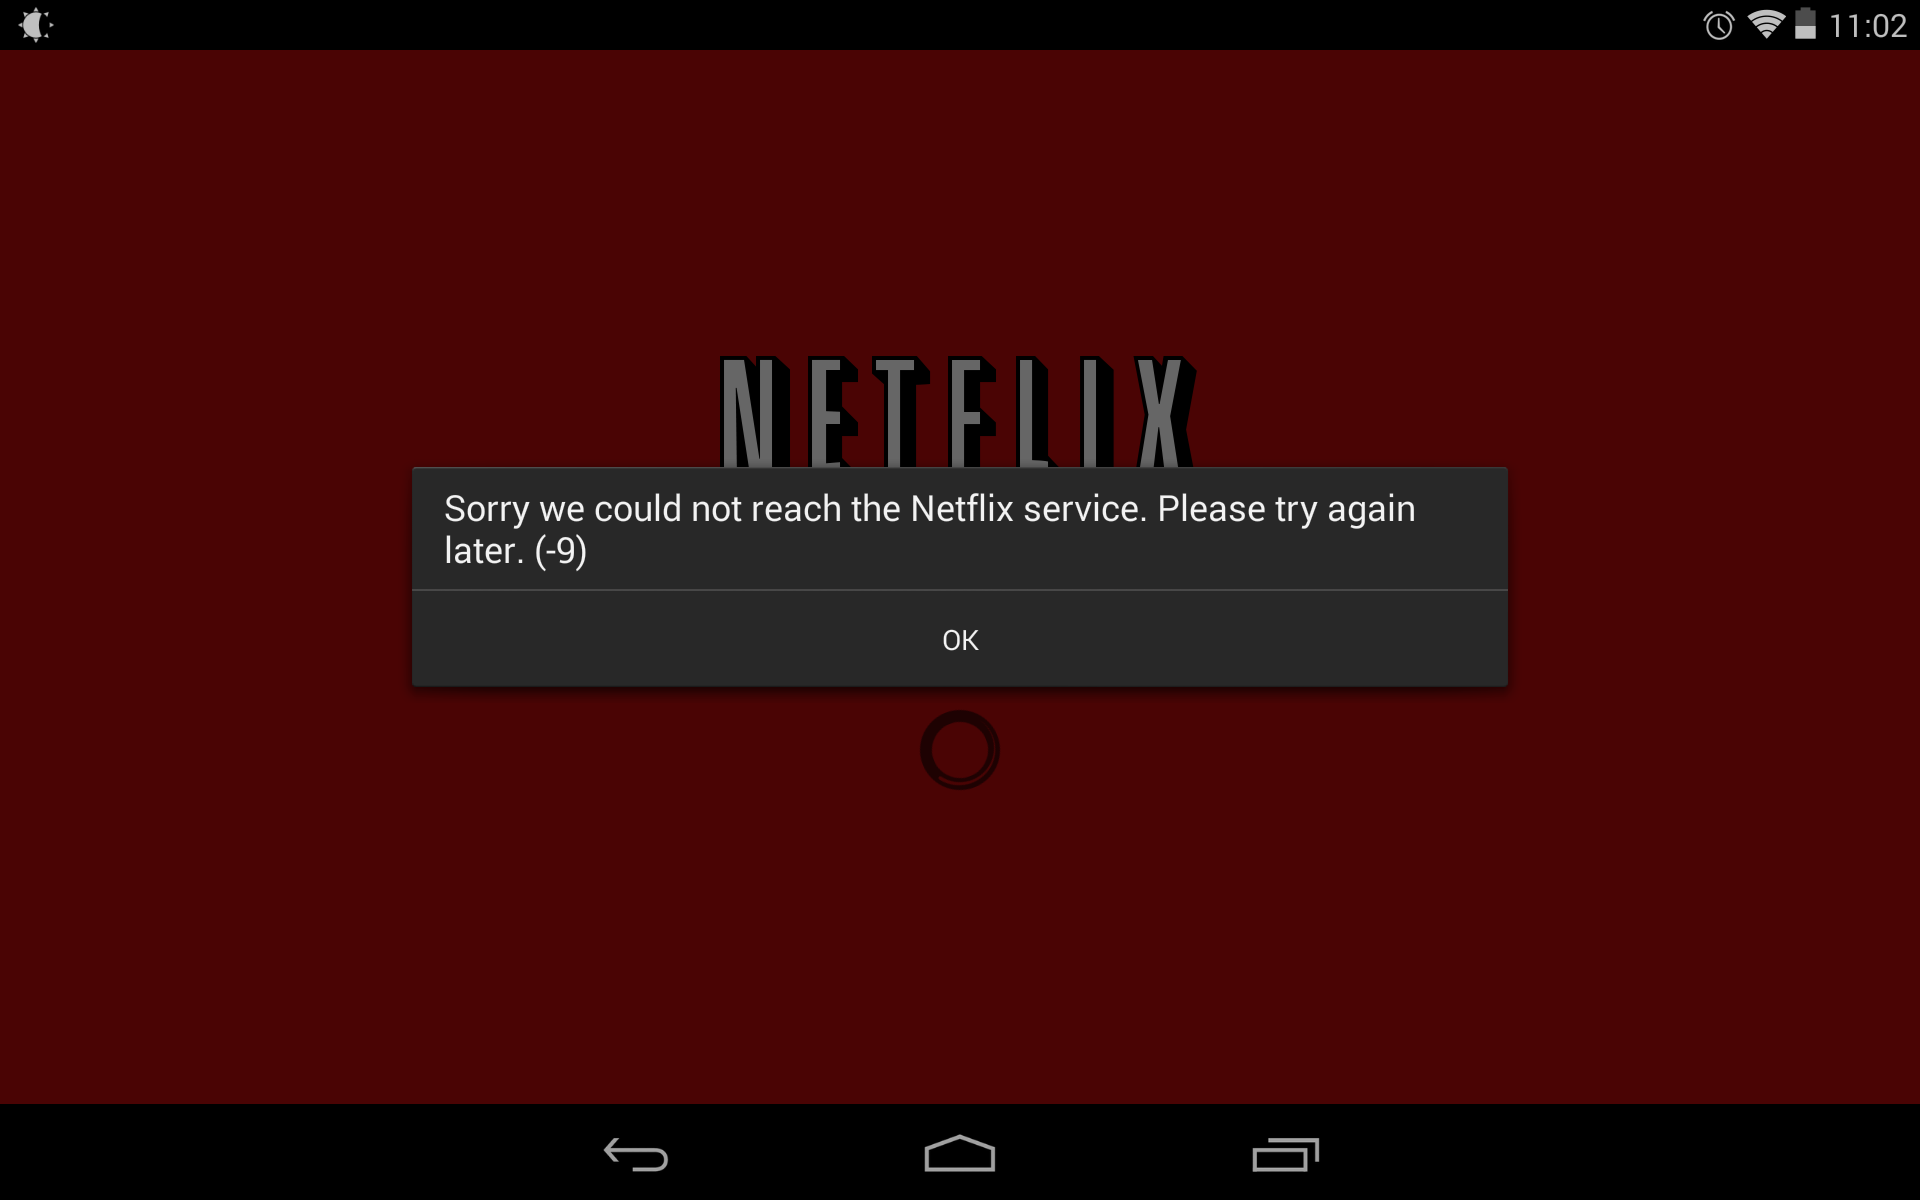 Netflix common error